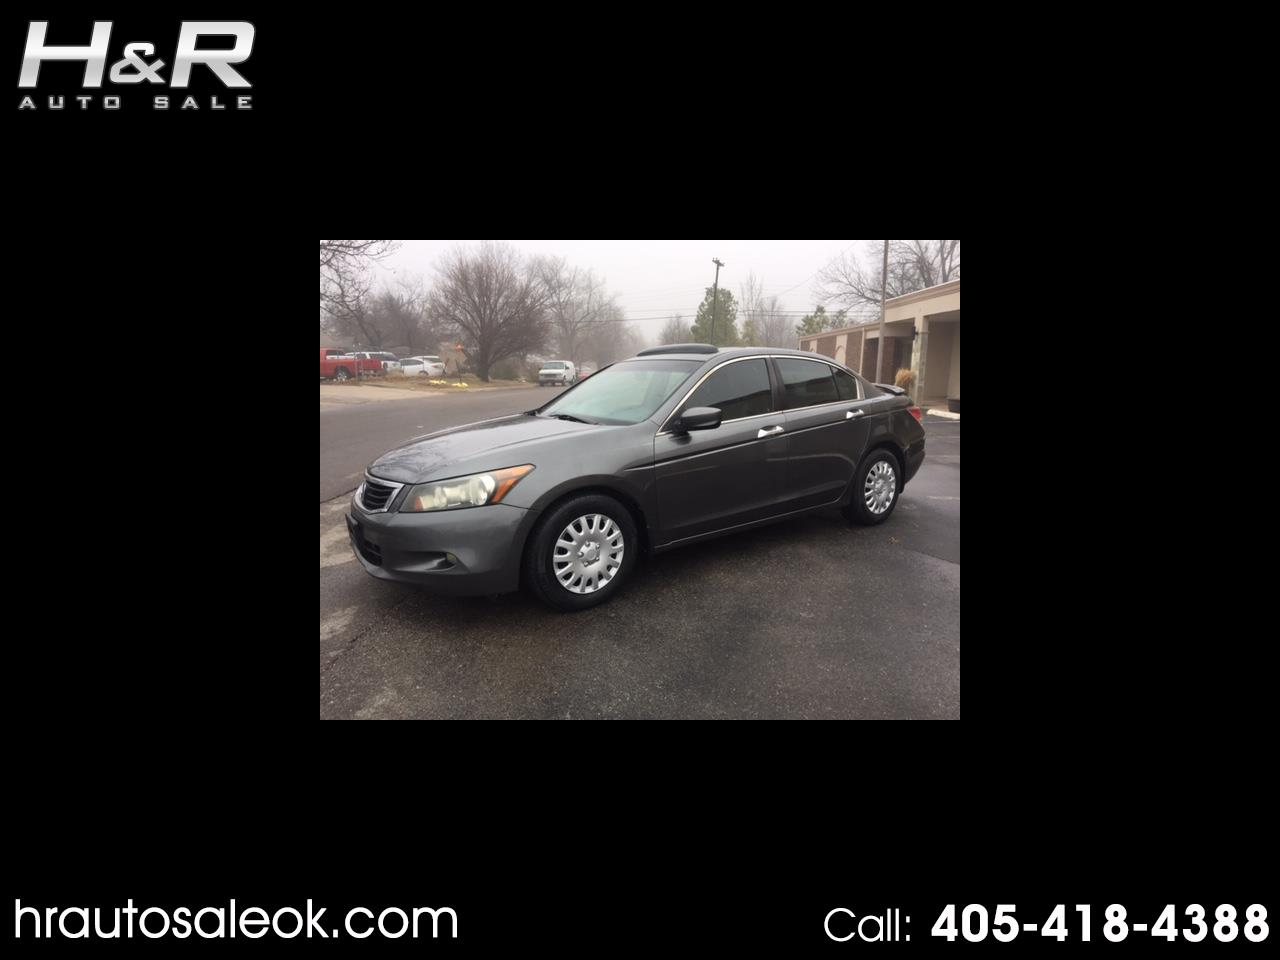 2008 Honda Accord EX-L V-6 Sedan AT